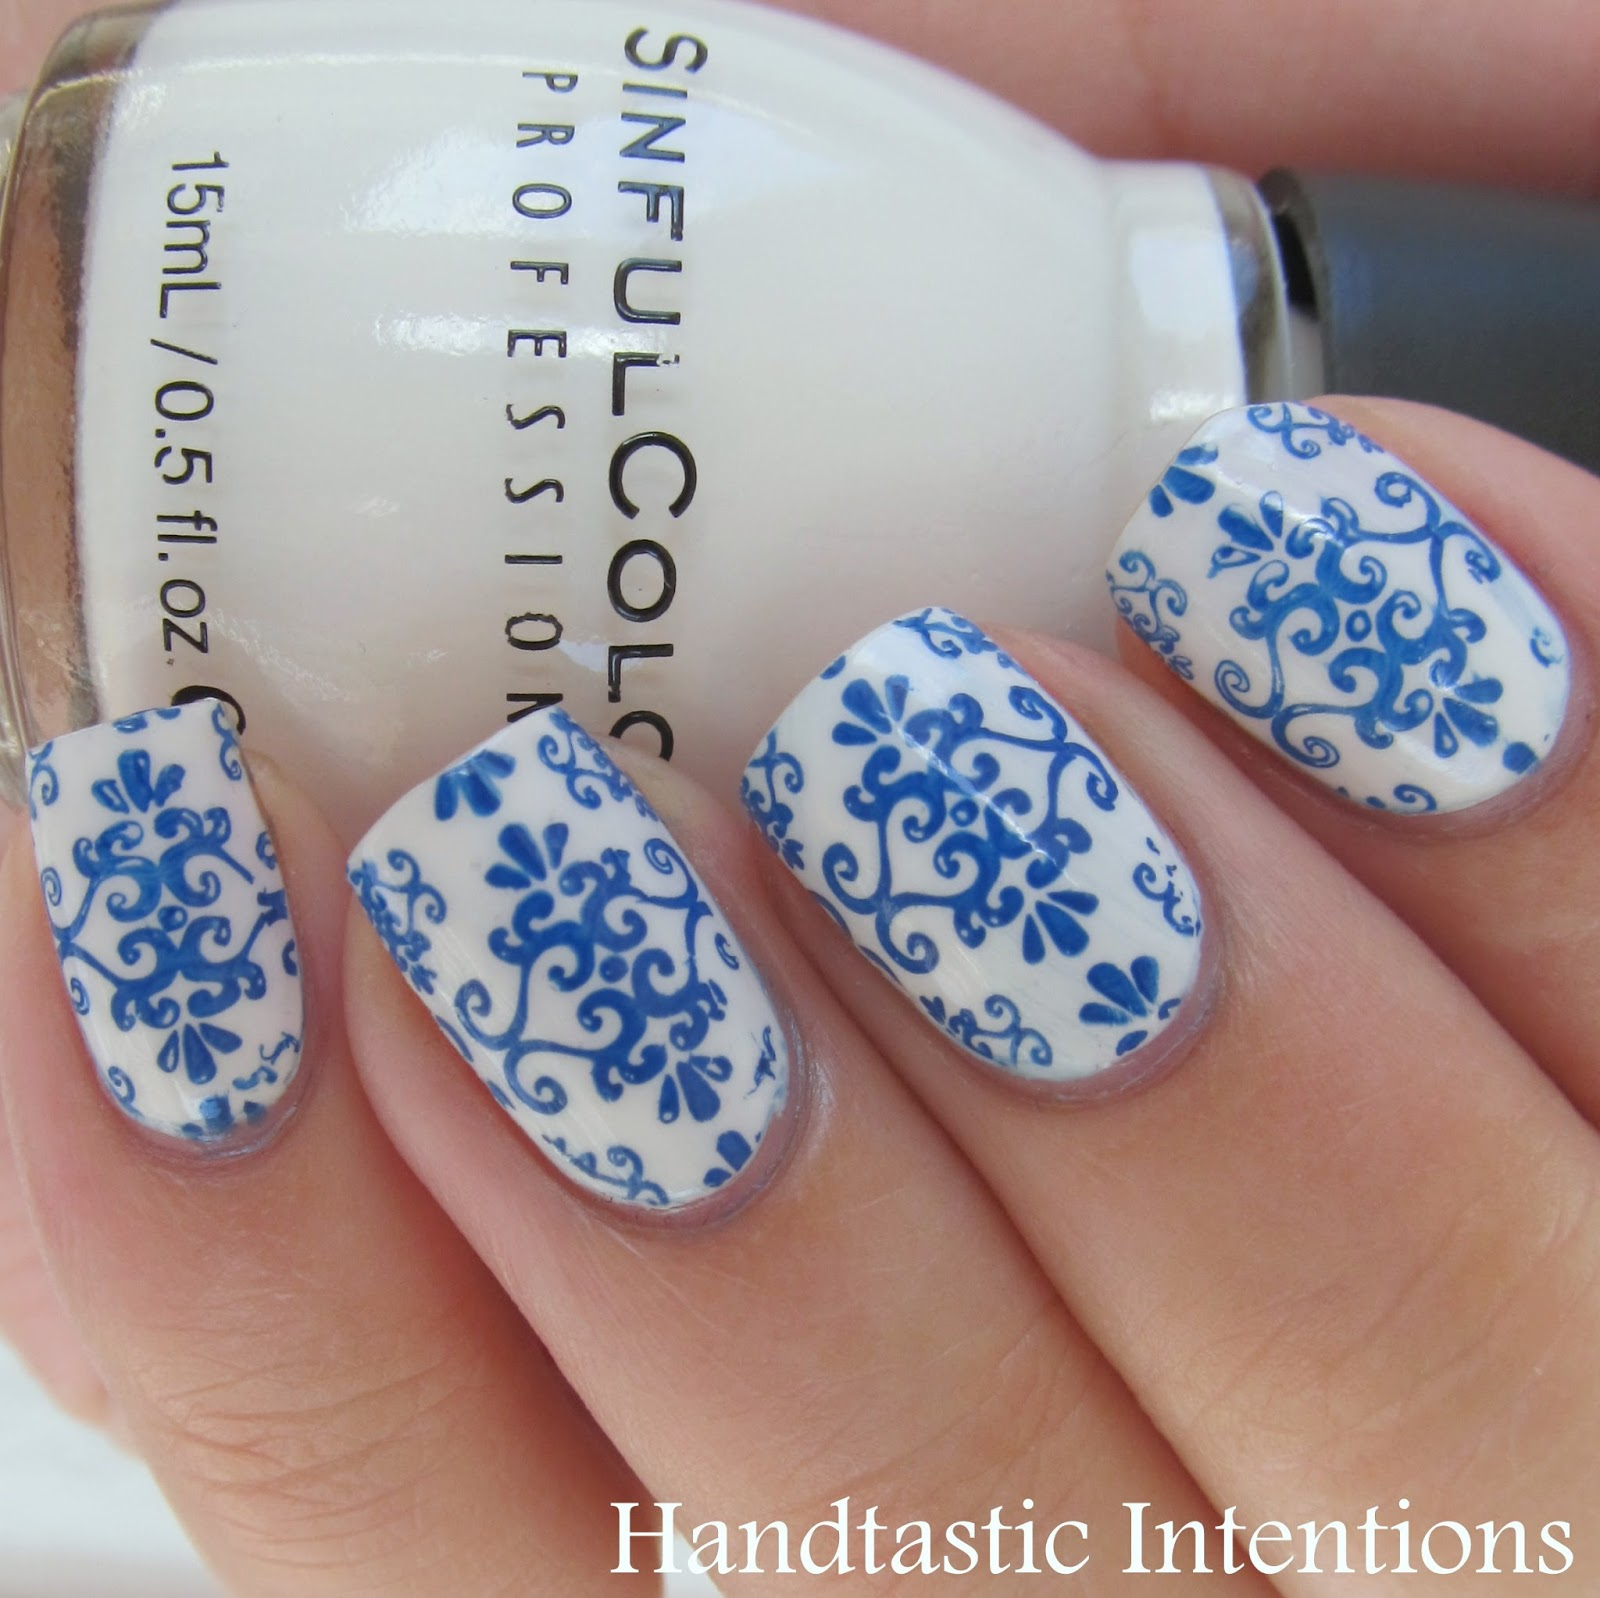 Handtastic Intentions Nail Art Blue And White Ceramics Inspired